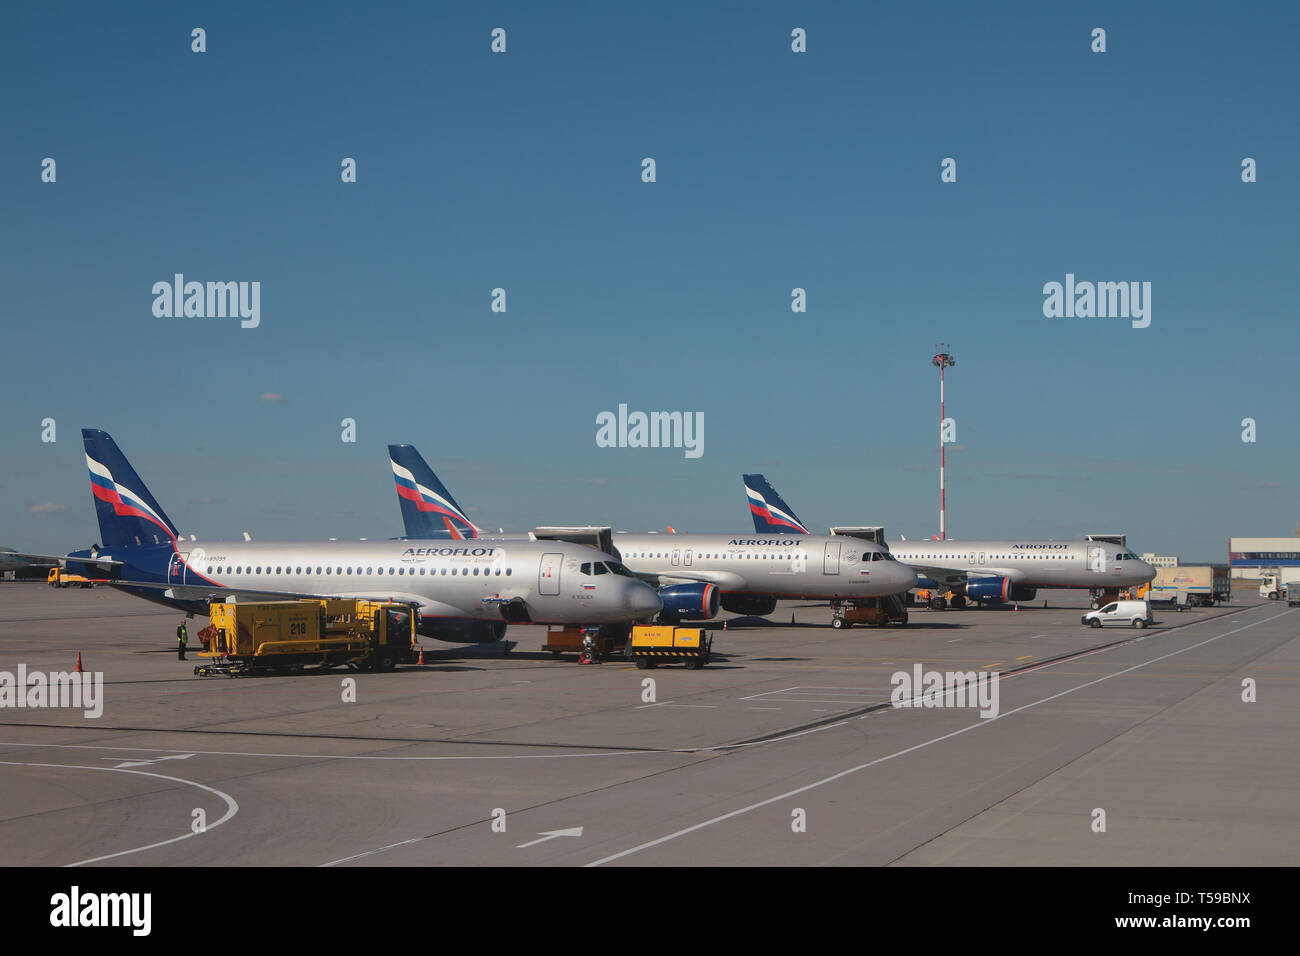 Moscow, Russia - Sep 14, 2018: Planes on parking at Sheremetyevo Airport - Stock Image